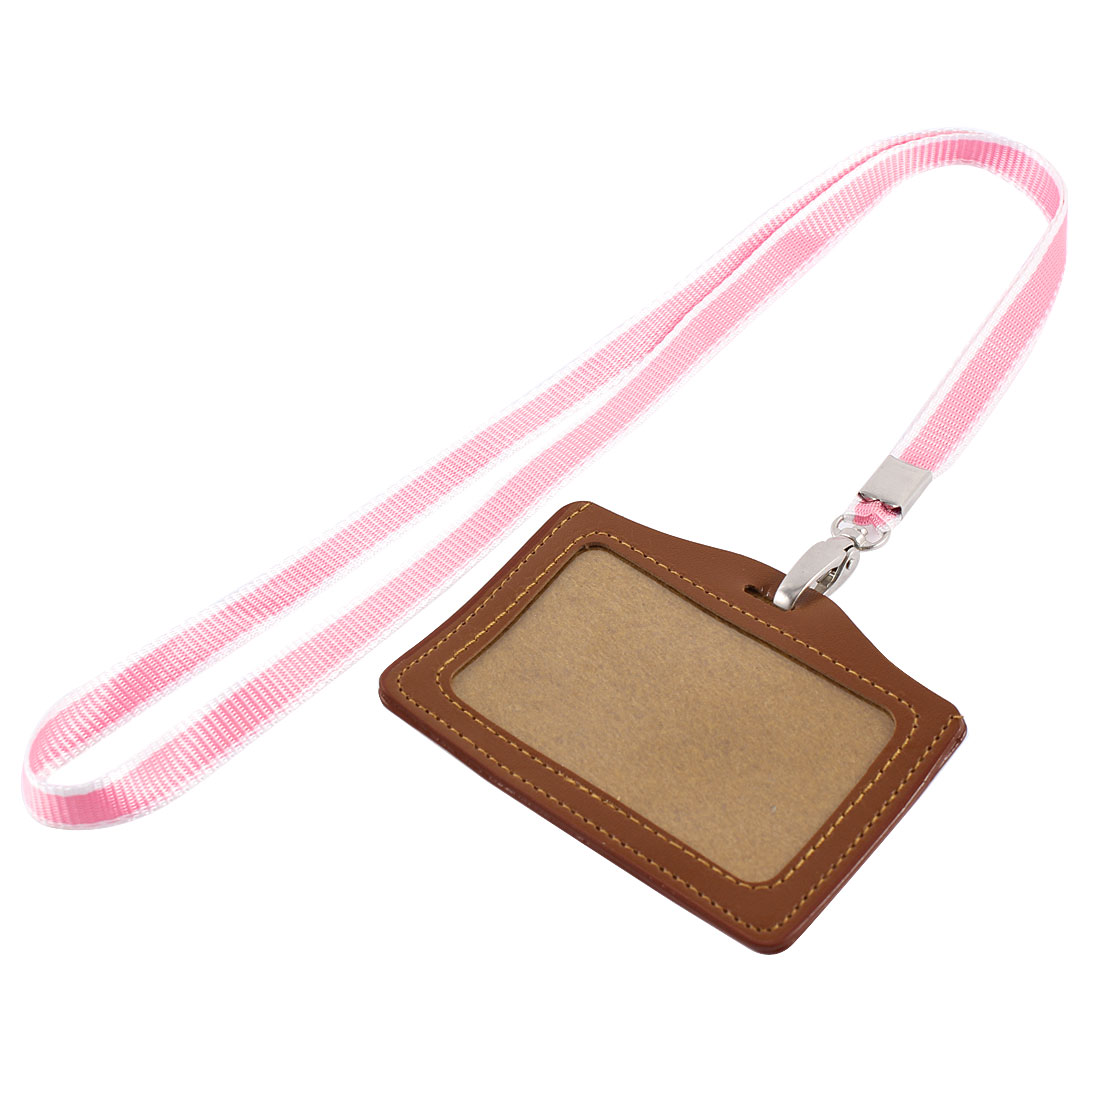 Faux Leather Horizontal Work School ID Card Badge Holder Brown w Pink Neck Strap